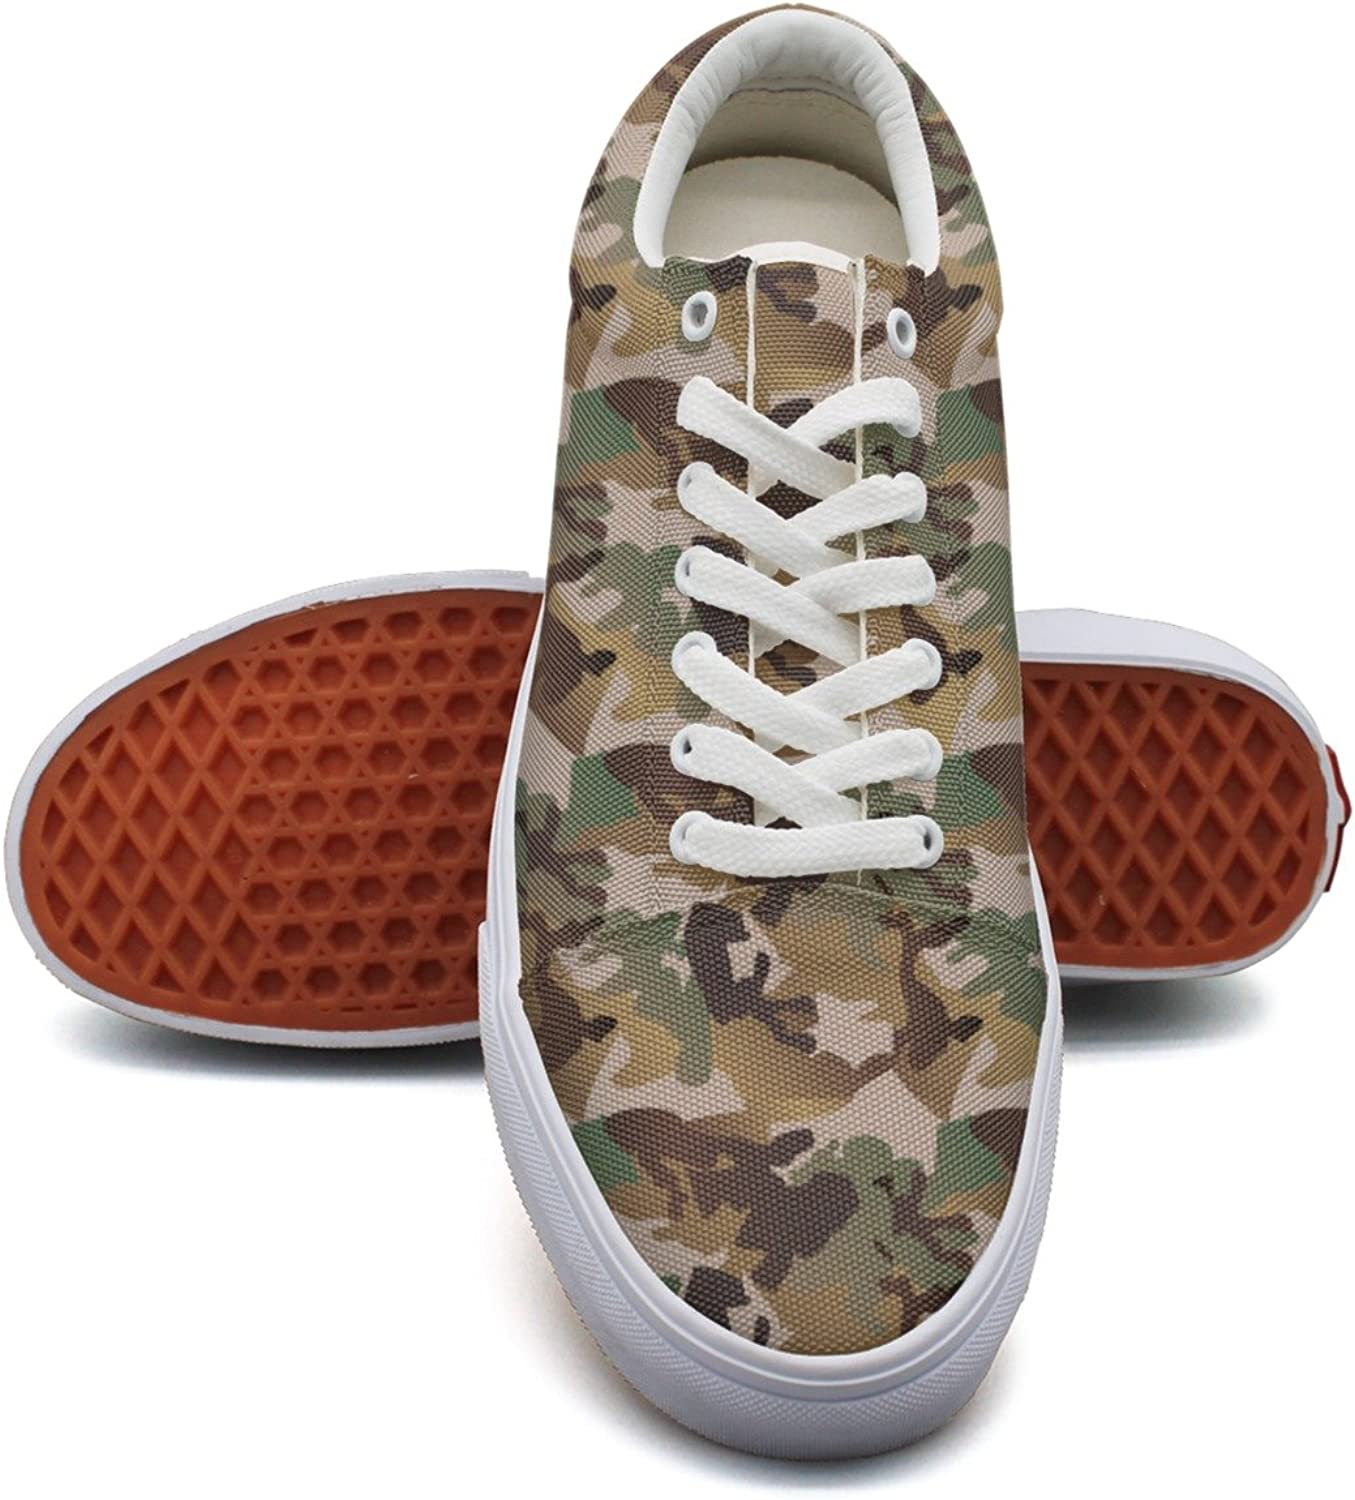 Feenfling Camouflage Military Army Womens Casual Canvas Lace Up Dhoes Low Top Neon Sneakers shoes for Women's